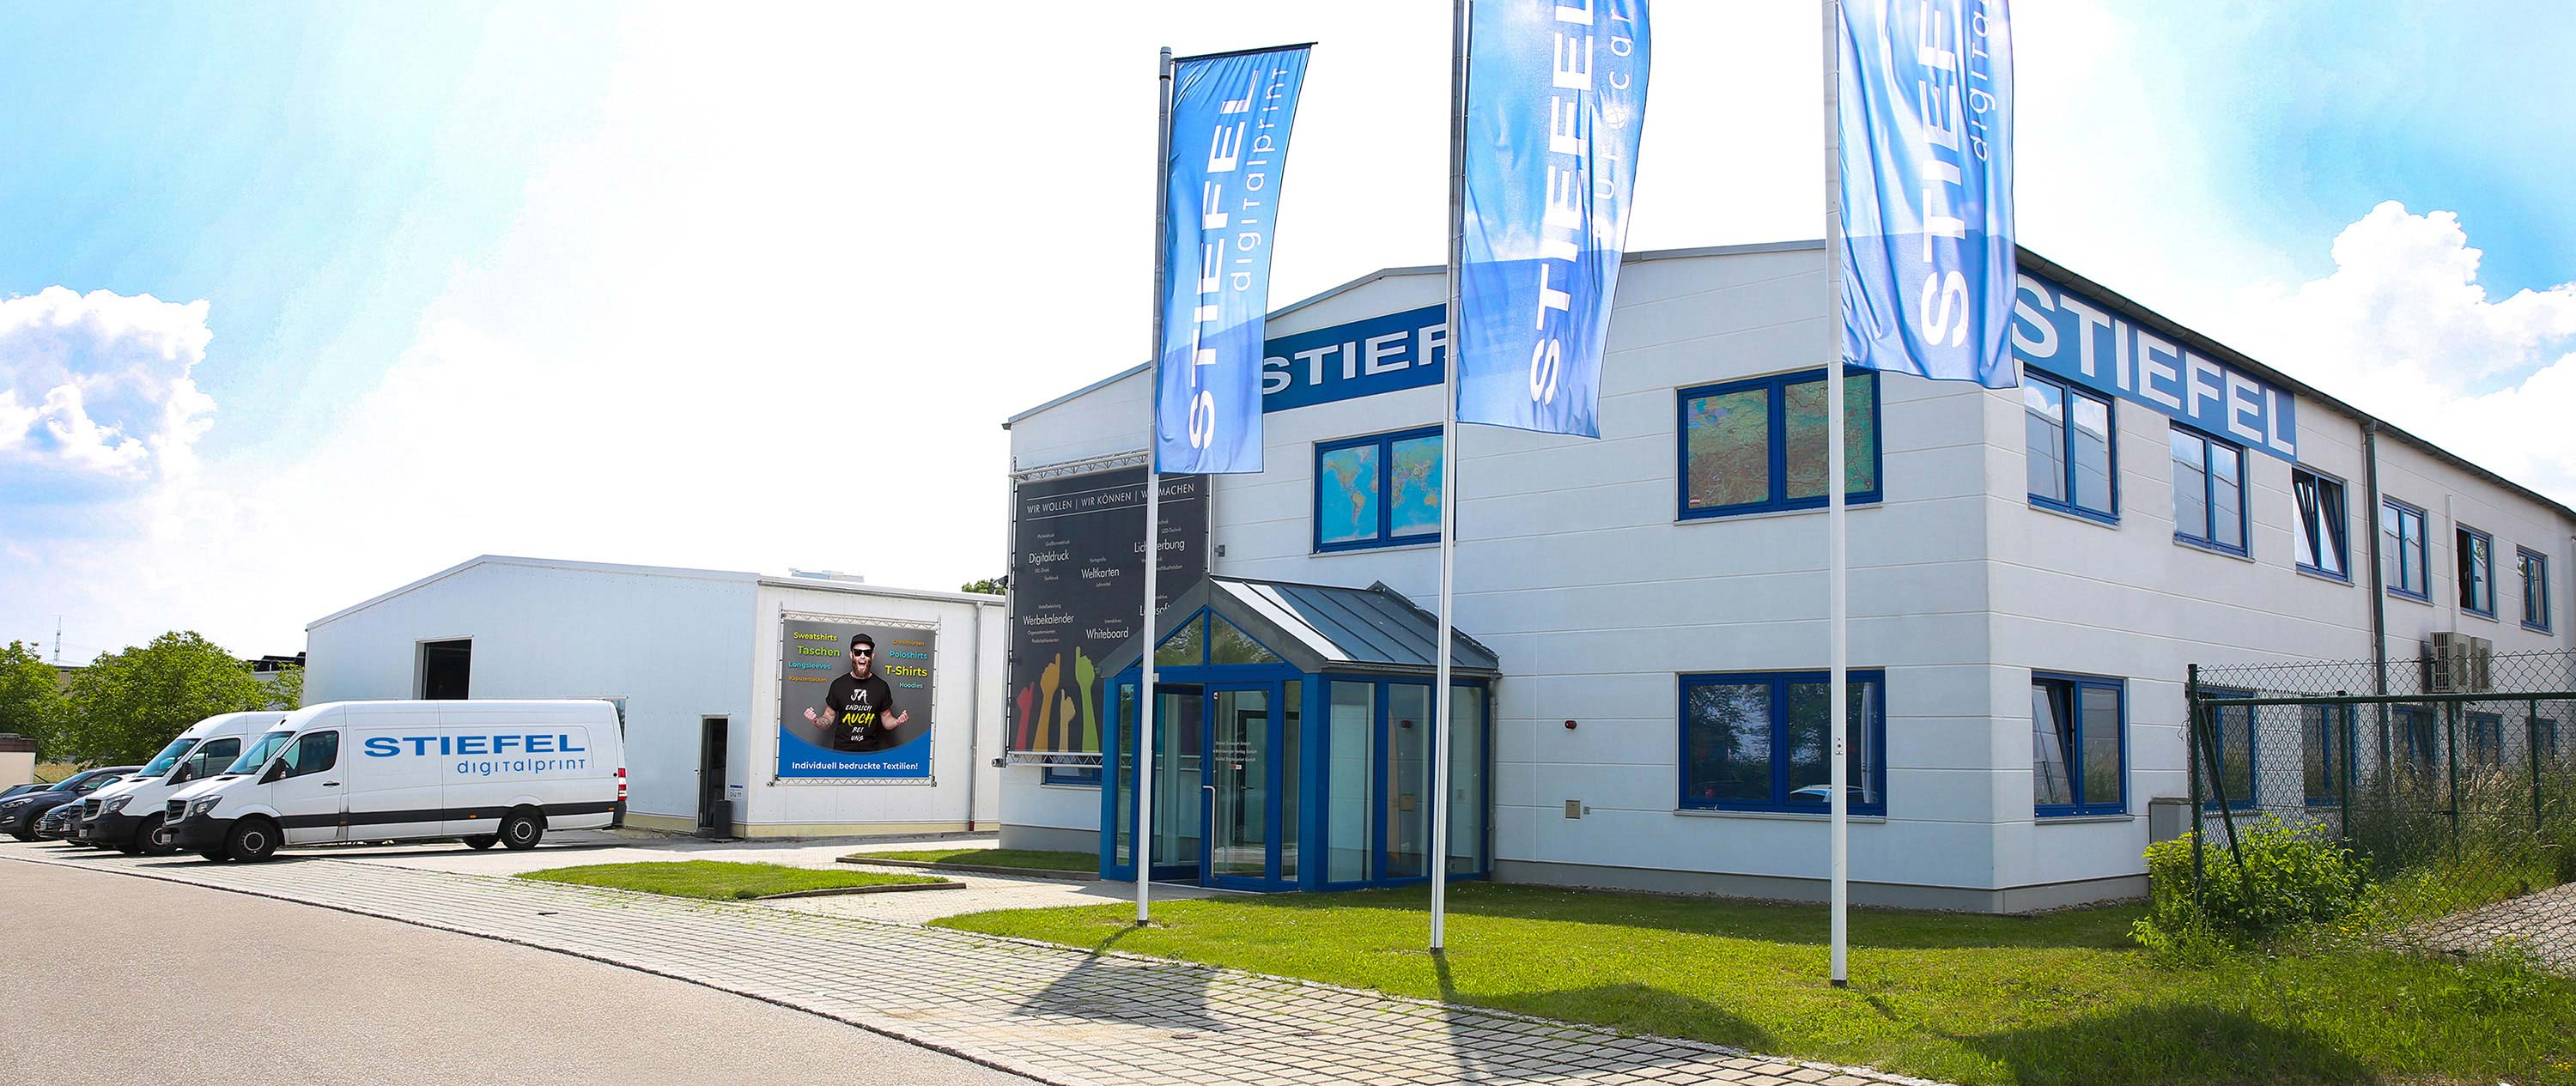 Firmensitz der Stiefel Group in Lenting bei Ingolstadt